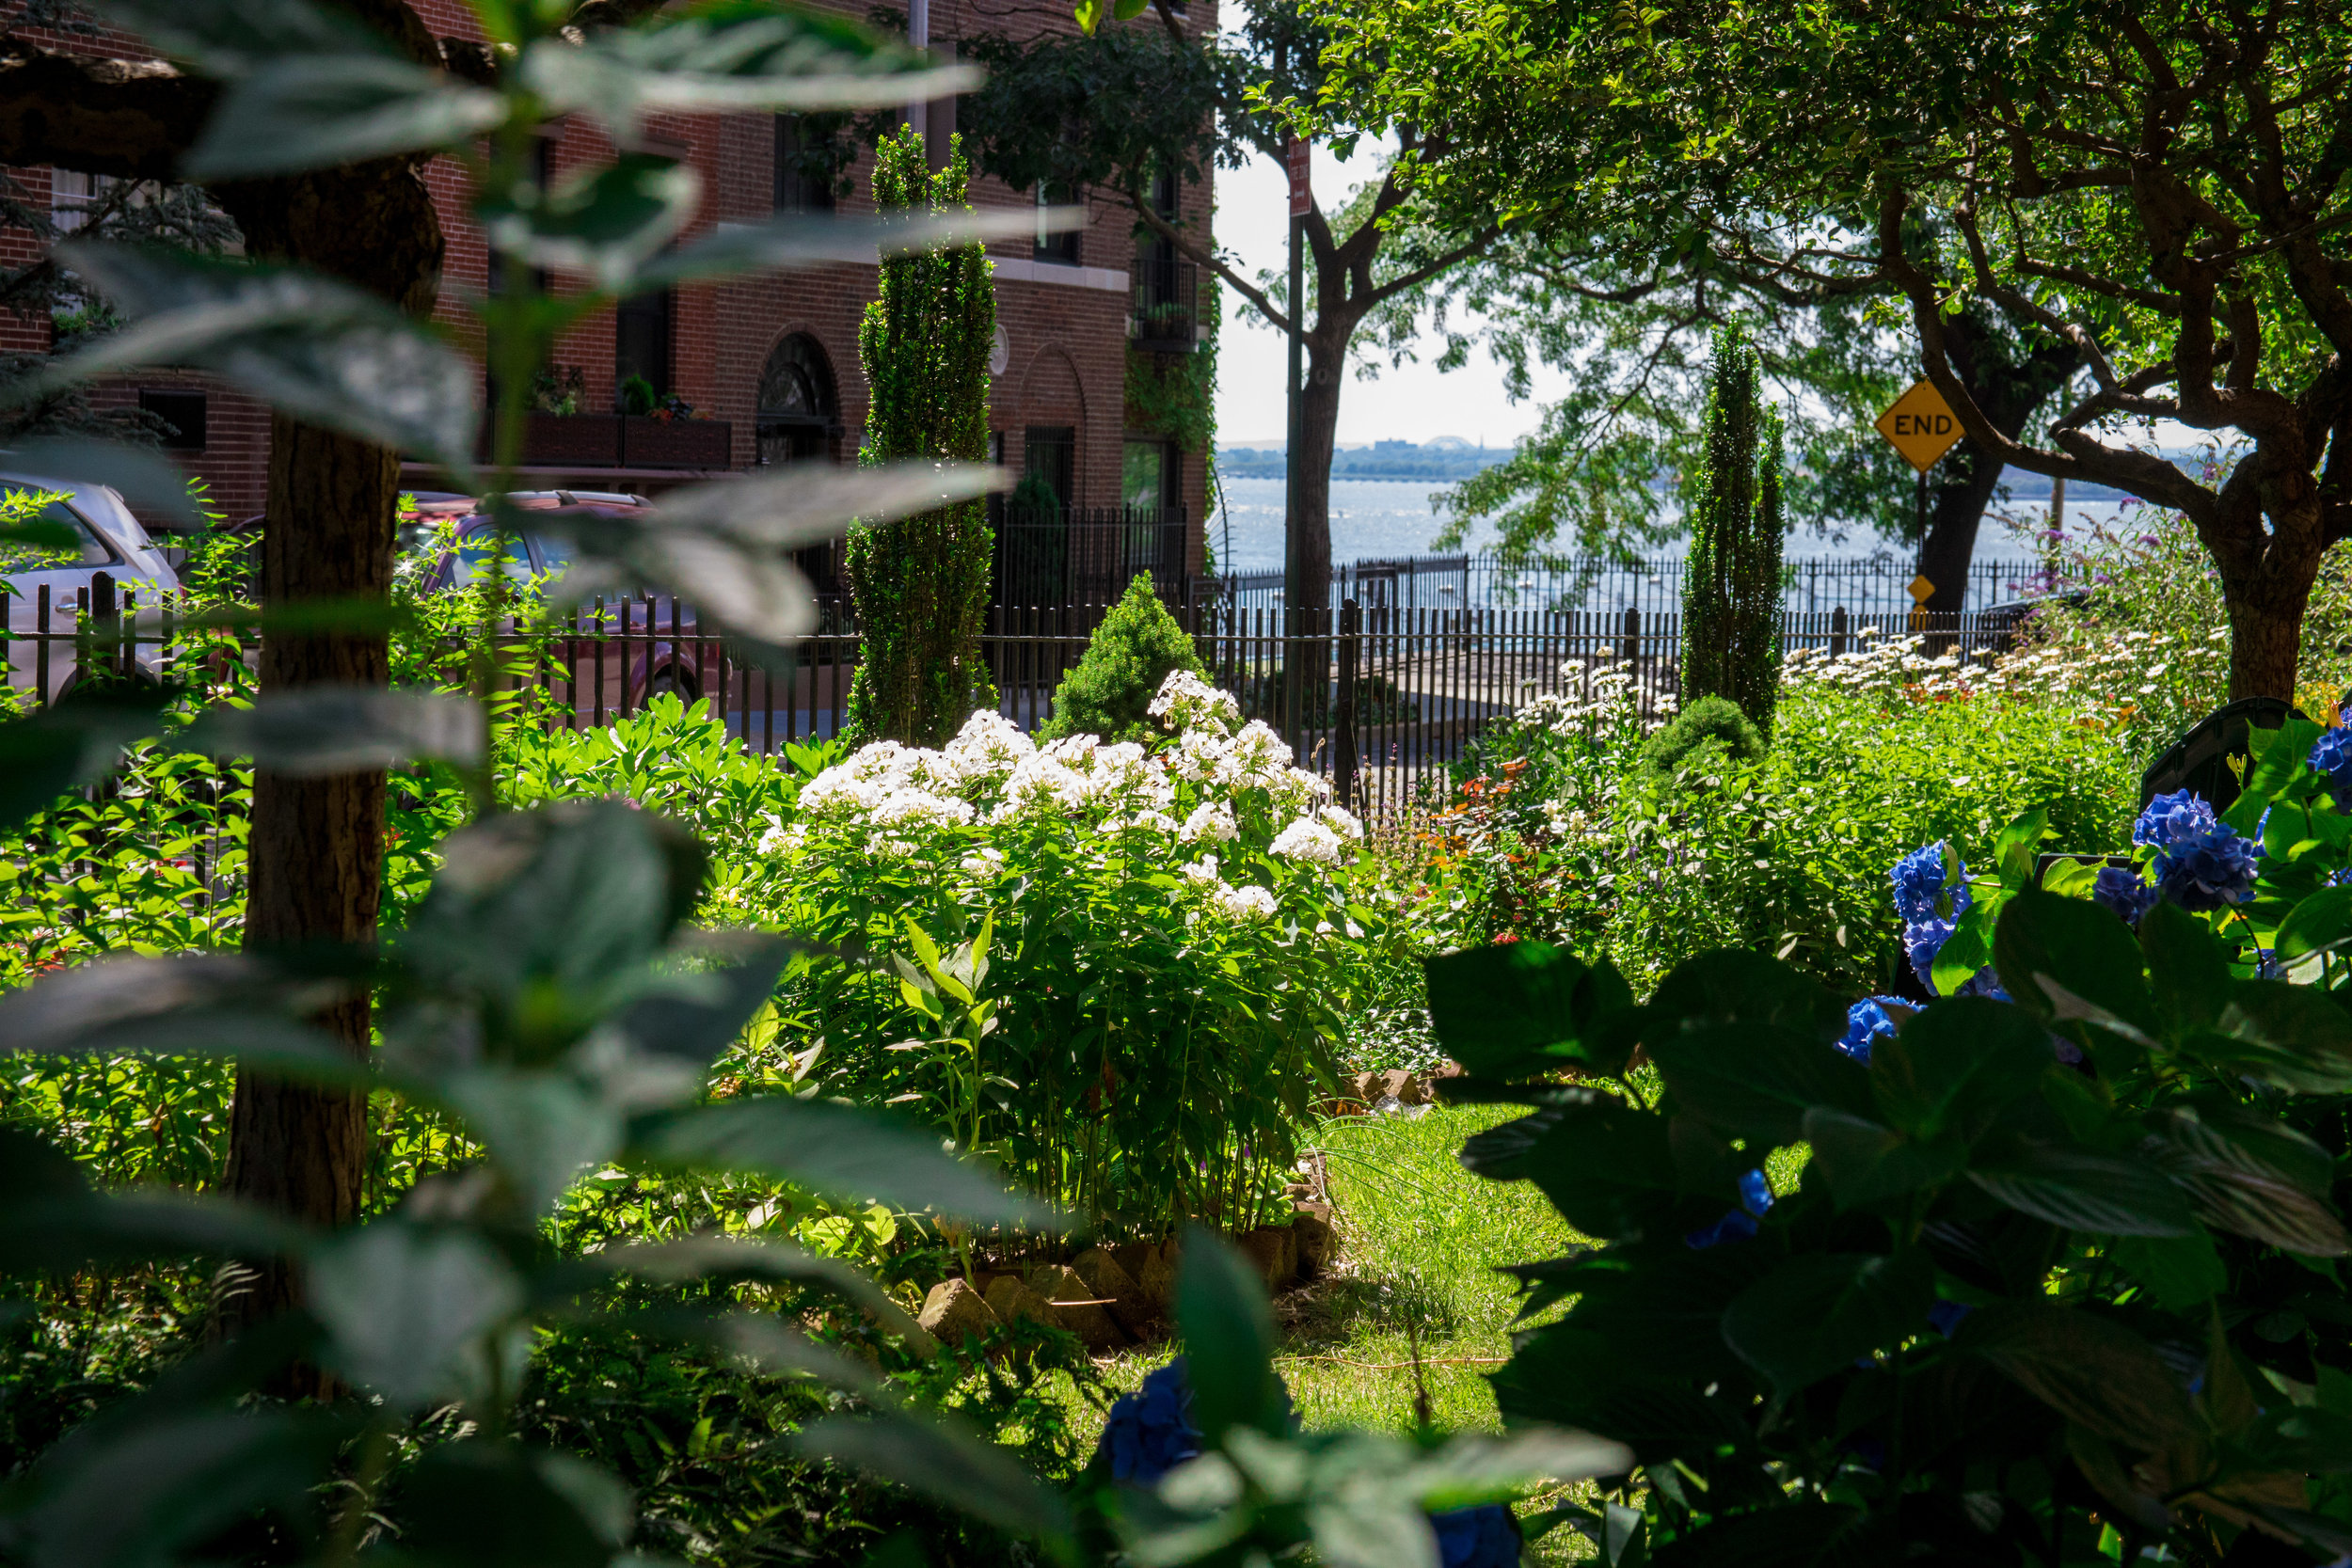 LSNY_Brooklyn-Heights-39.jpg